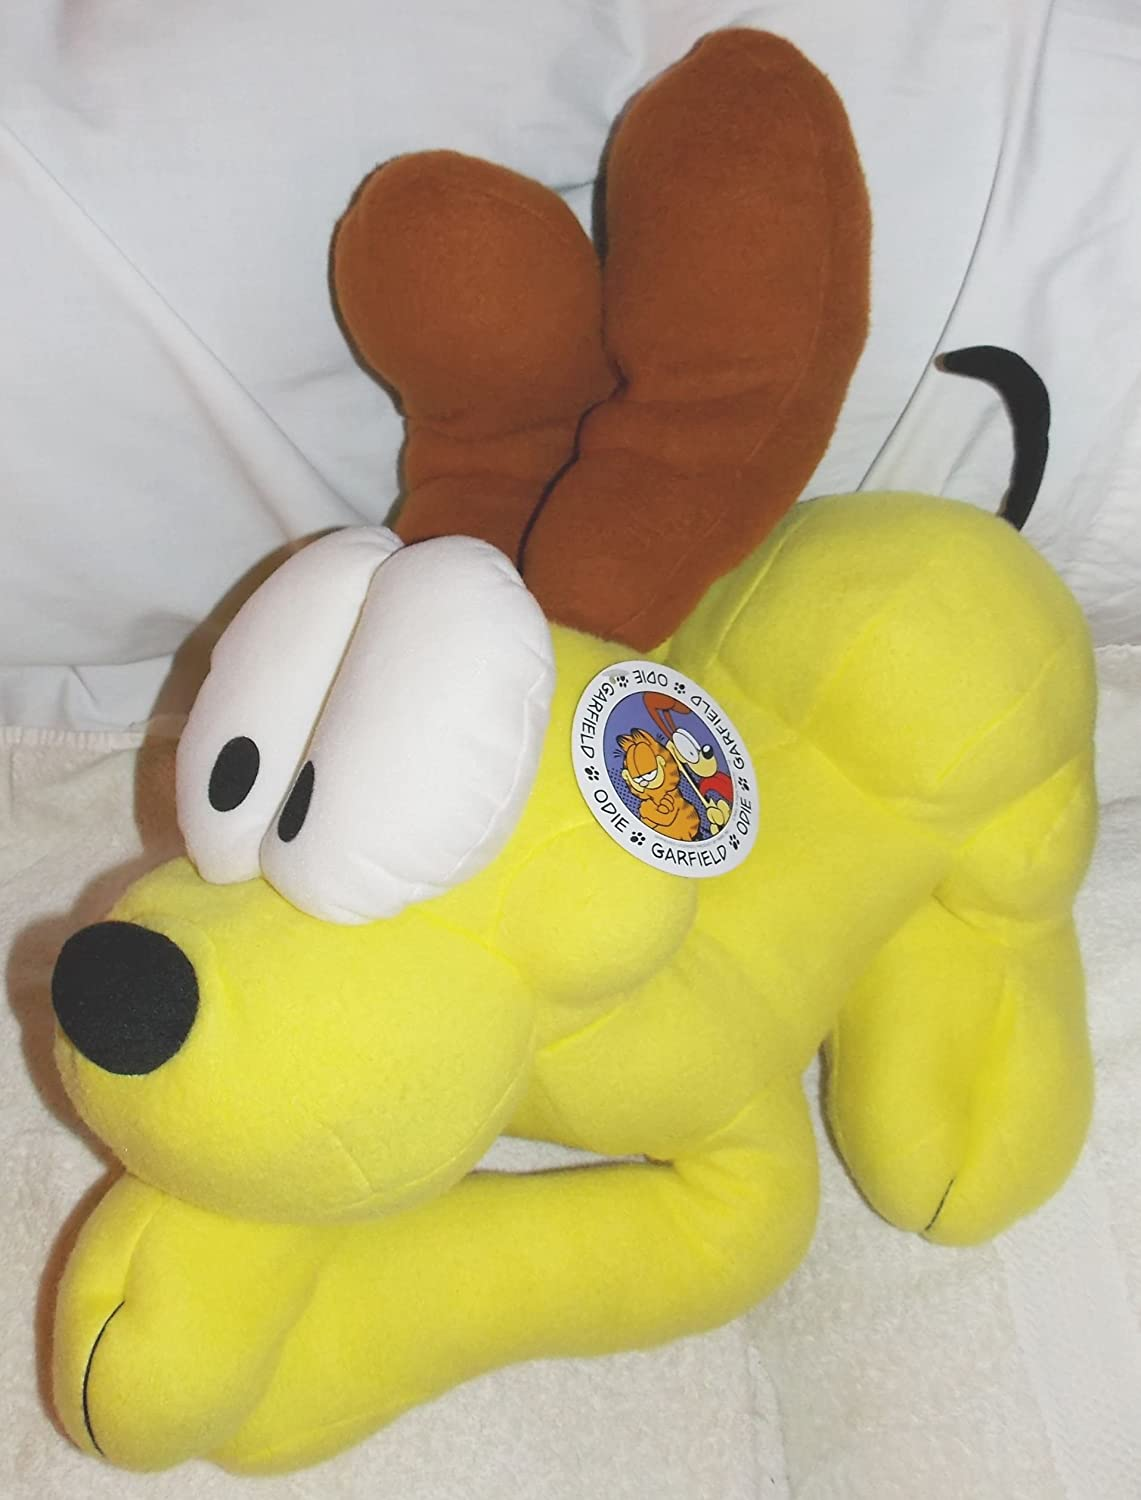 Amazon Com Garfield Large Soft Stuffed Plush Odie The Dog Pillowtime Pal Cuddle Pillow Toys Games